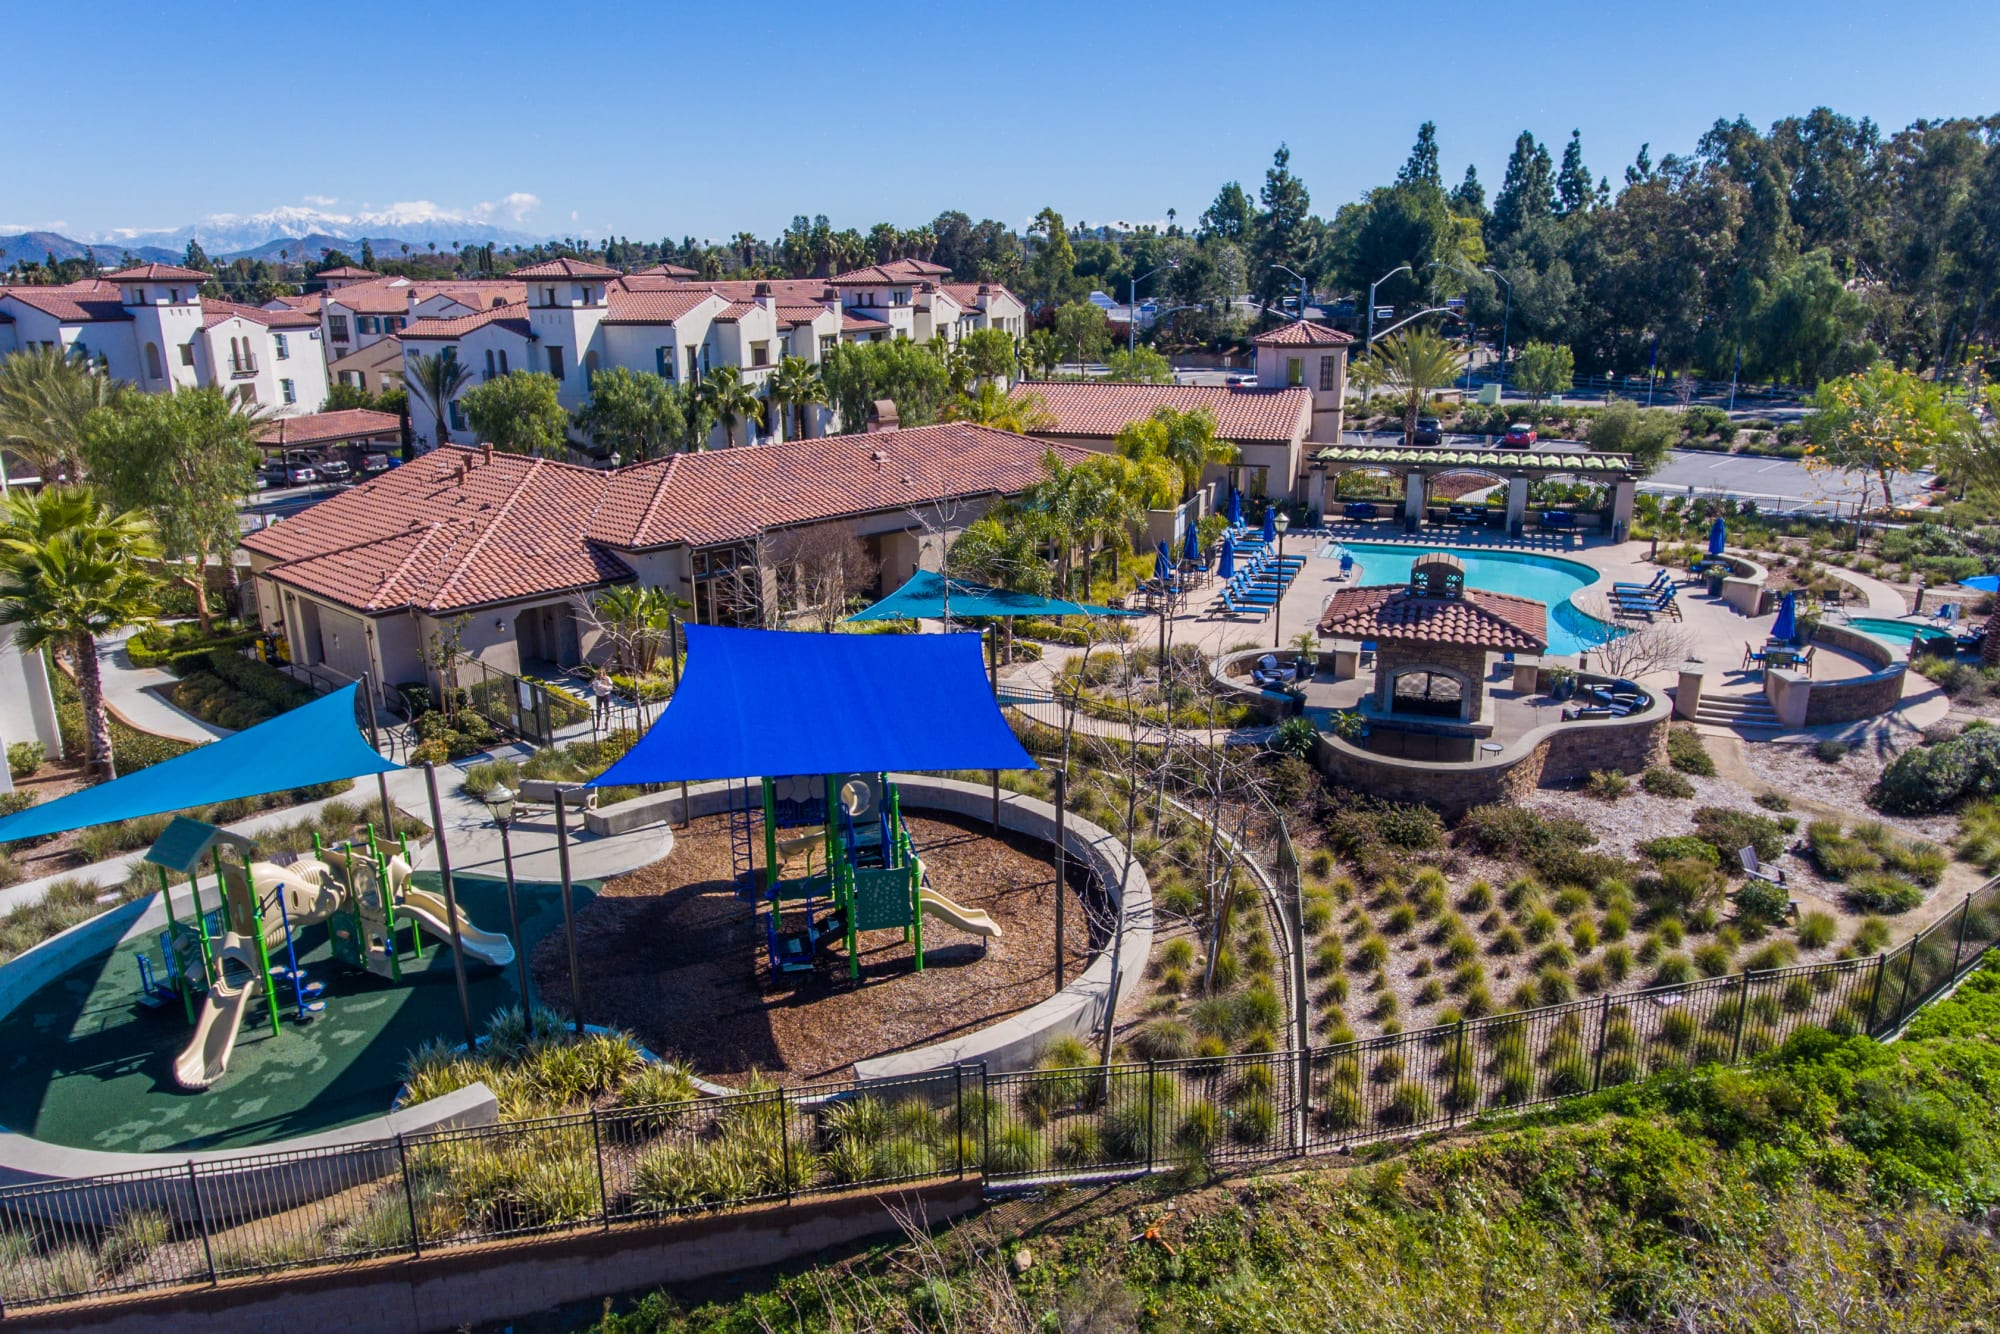 Aerial view of pool, playground, and property with surrounding area at Palisades Sierra Del Oro